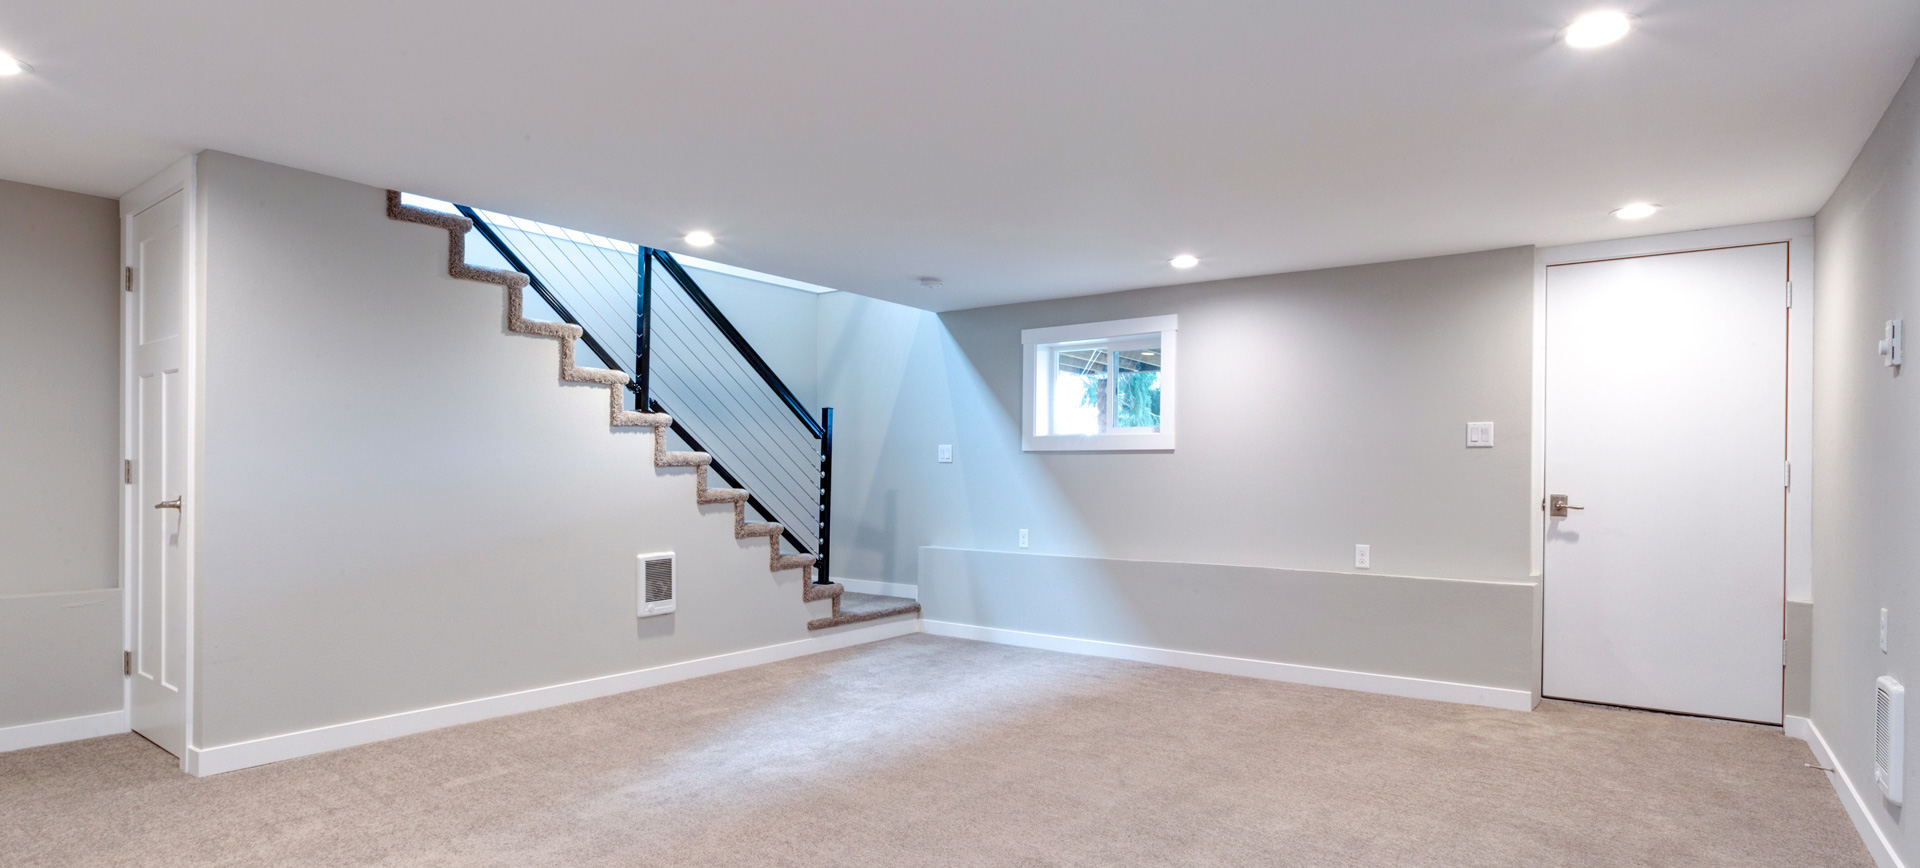 Fort Collins Basement Finishing & Remodeling Company